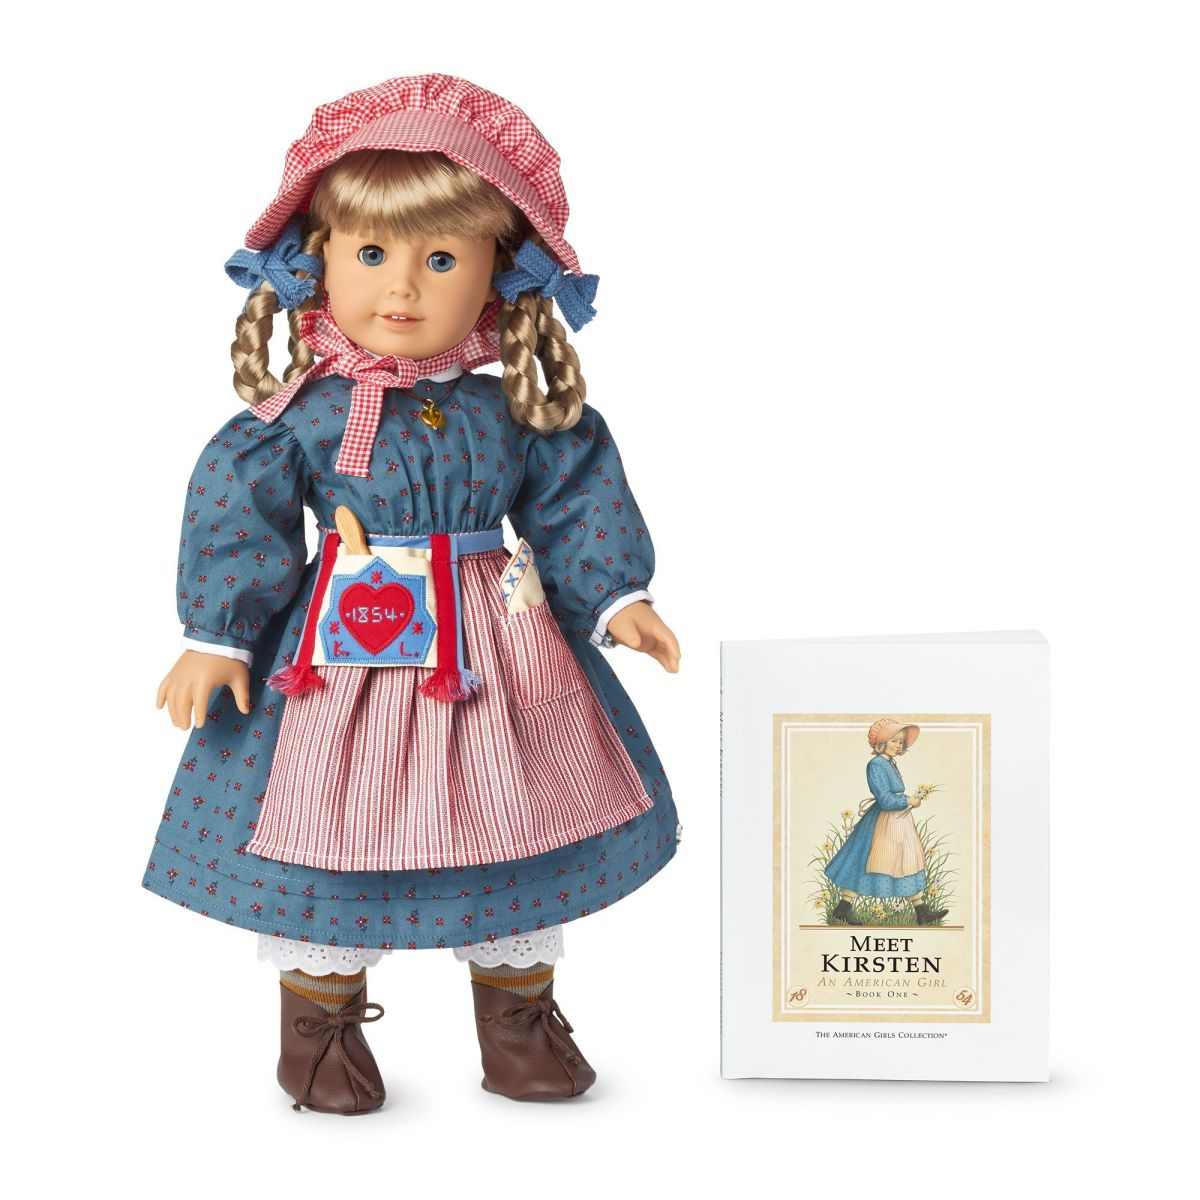 A 35th Anniversary Kirsten Doll, pictured with the Meet Kirsten book in its original design